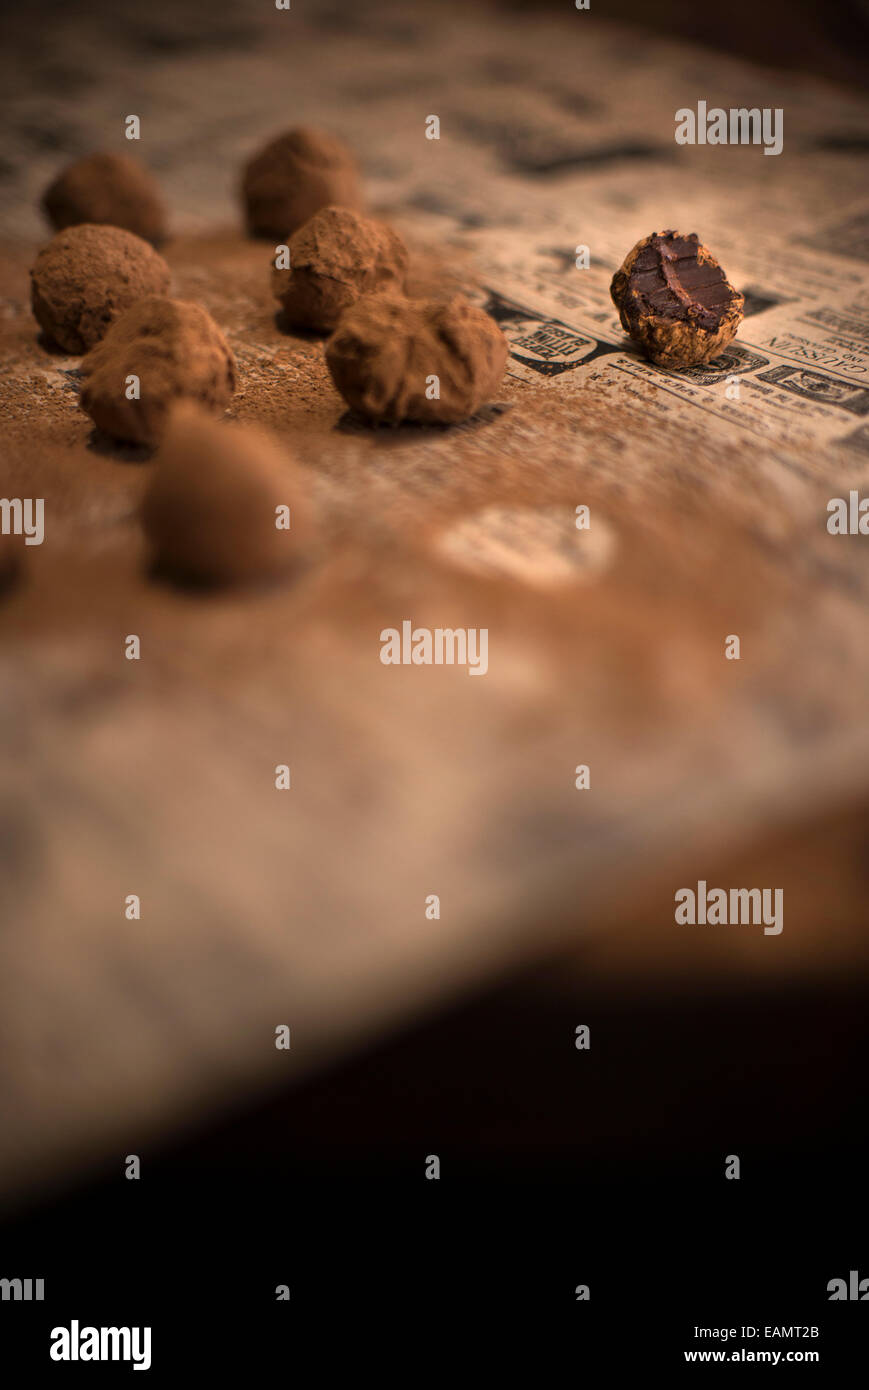 Rows of chocolate truffles covered in cocoa on antique newspaper and rustic wood surface. One truffle bitten into. - Stock Image